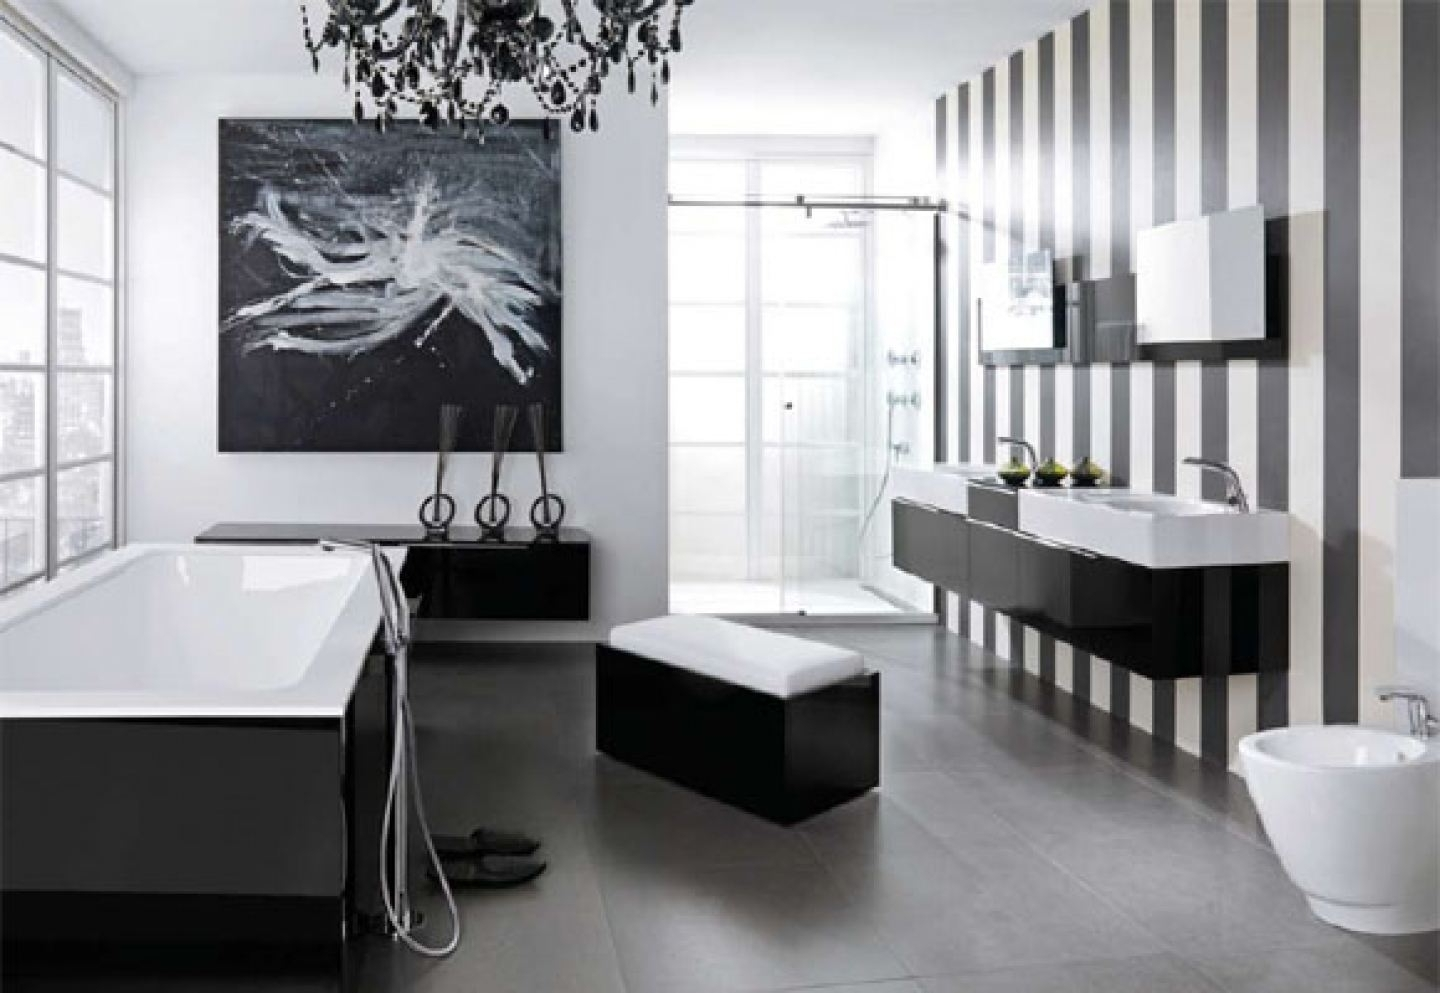 Black And White Bathroom Border Tiles Black White Glossy Finished Pertaining To Well Known Wall Mounted Bathroom Chandeliers (View 2 of 20)